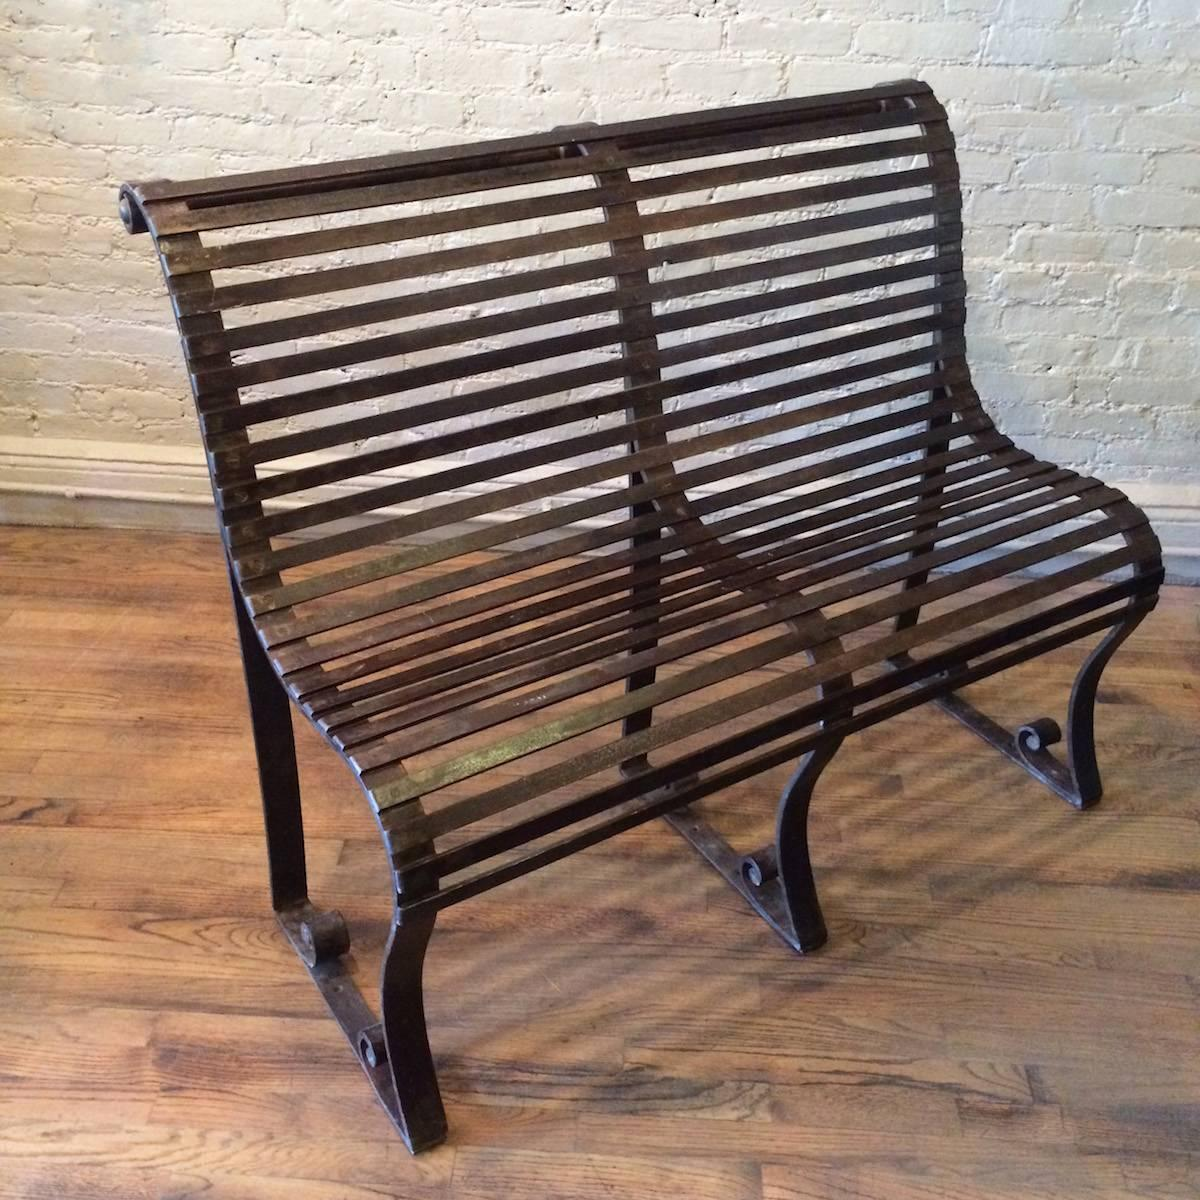 Late 19th Century Victorian Wrought Iron Park Bench For Sale At 1stdibs